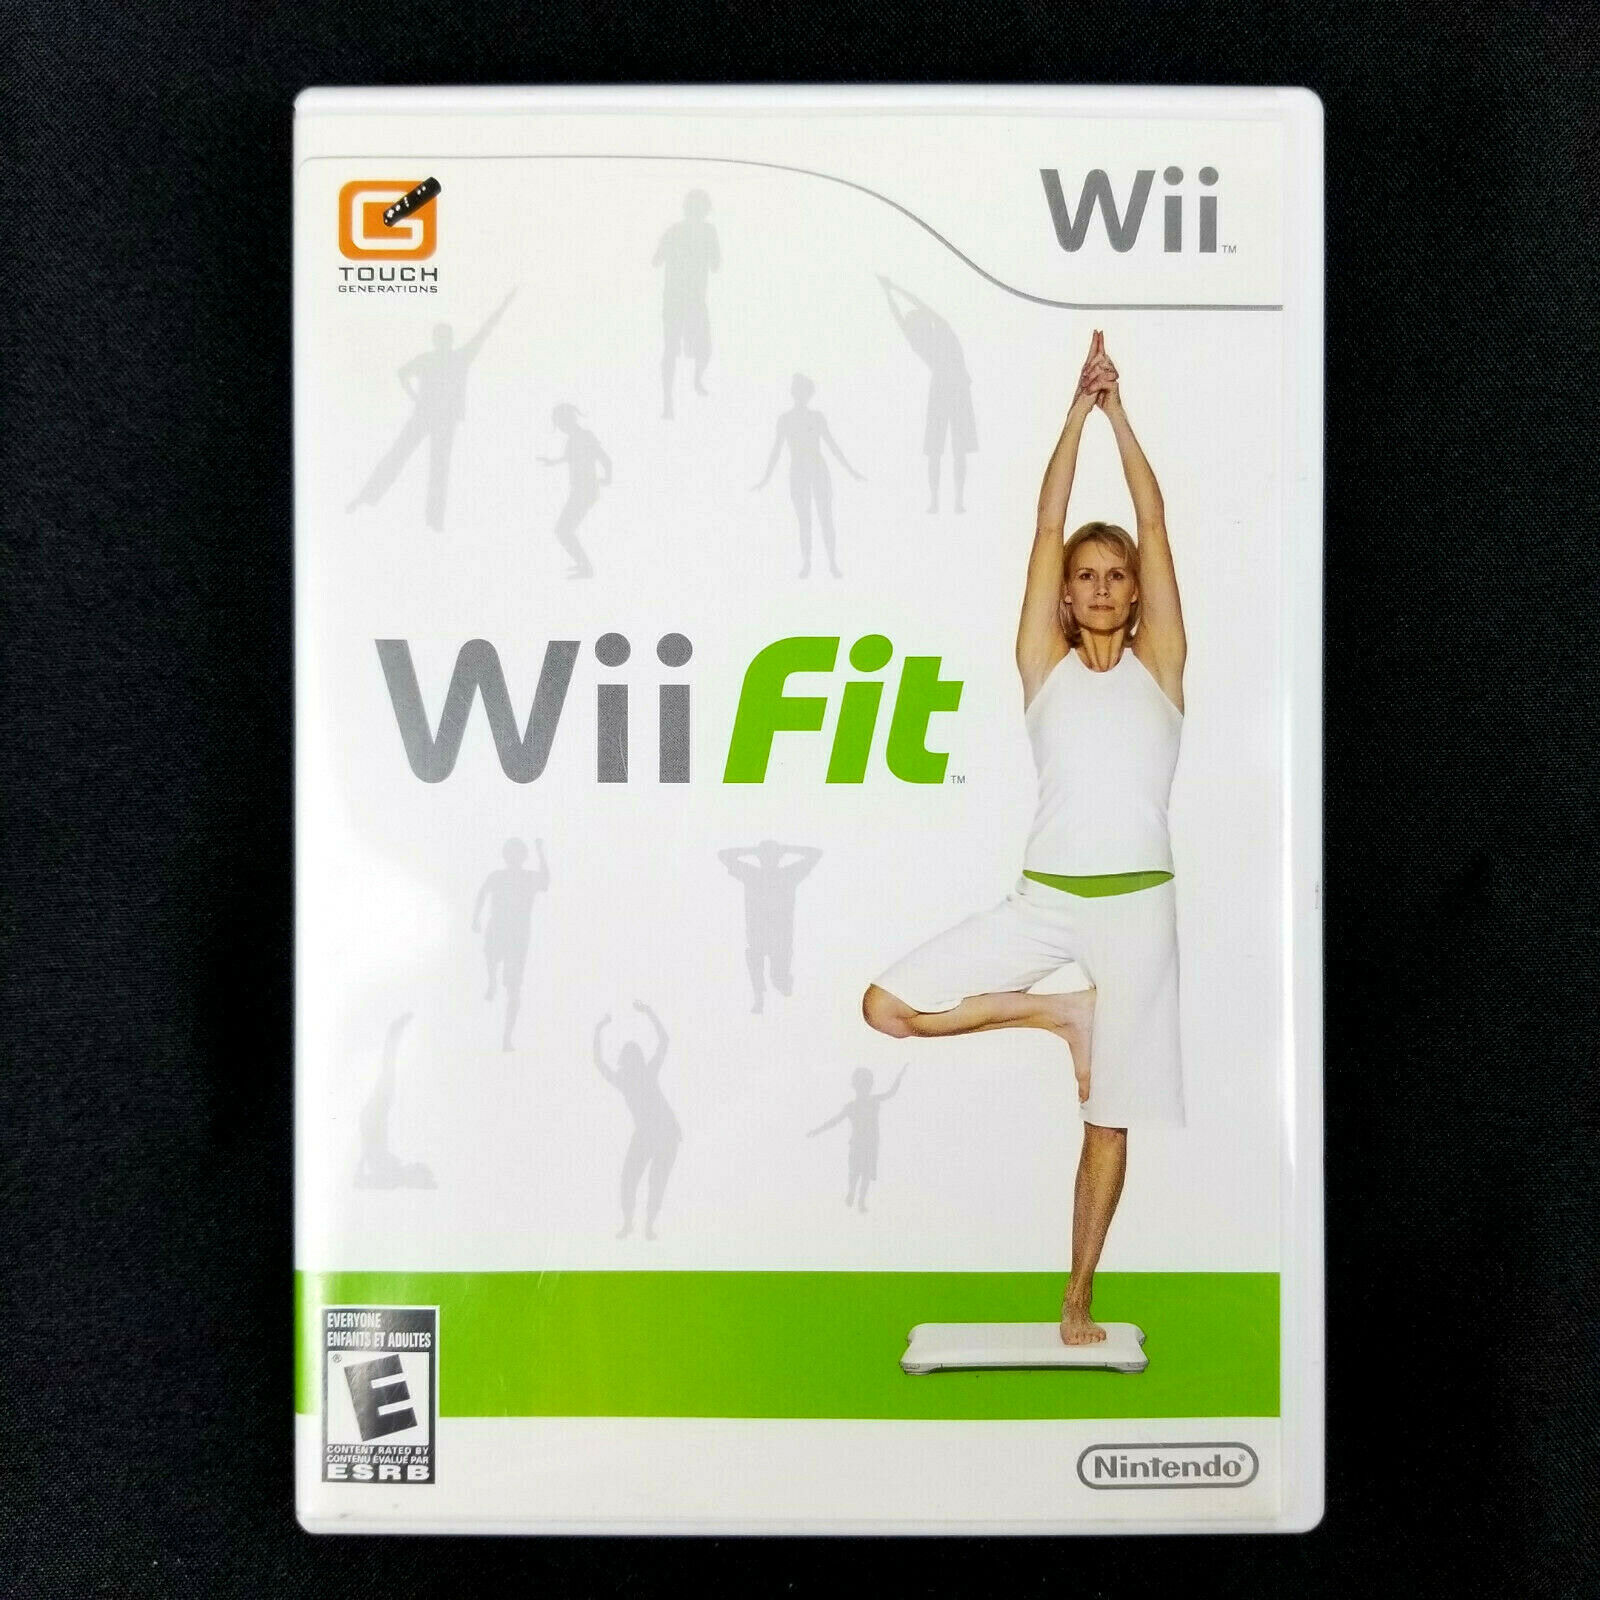 Primary image for Wii Fit Nintendo Wii, 2008 - English French Spanish - w/ Instruction Booklet